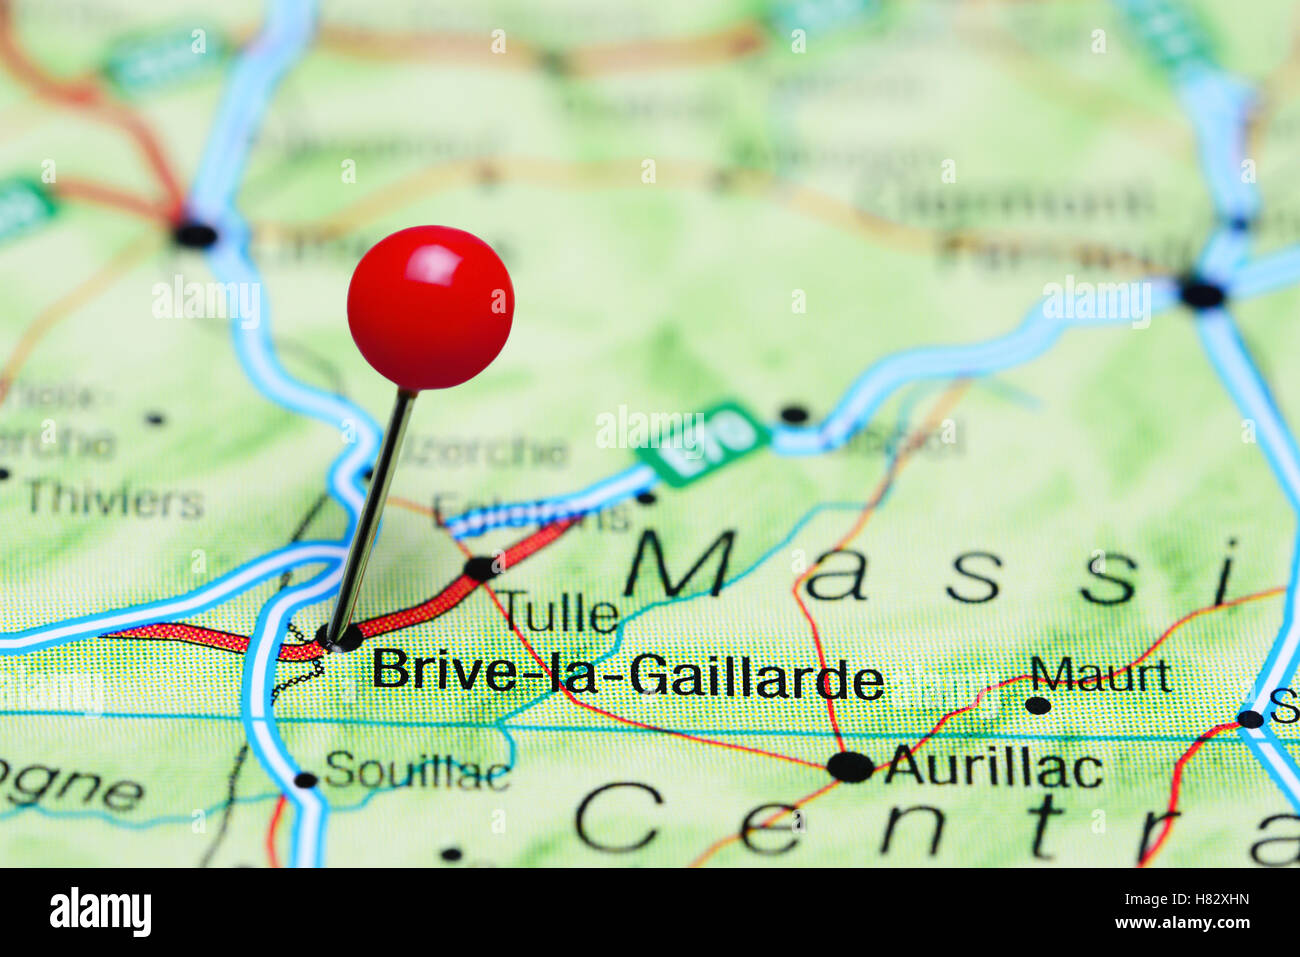 Brive France Map.Brive La Gaillarde Pinned On A Map Of France Stock Photo 125454609